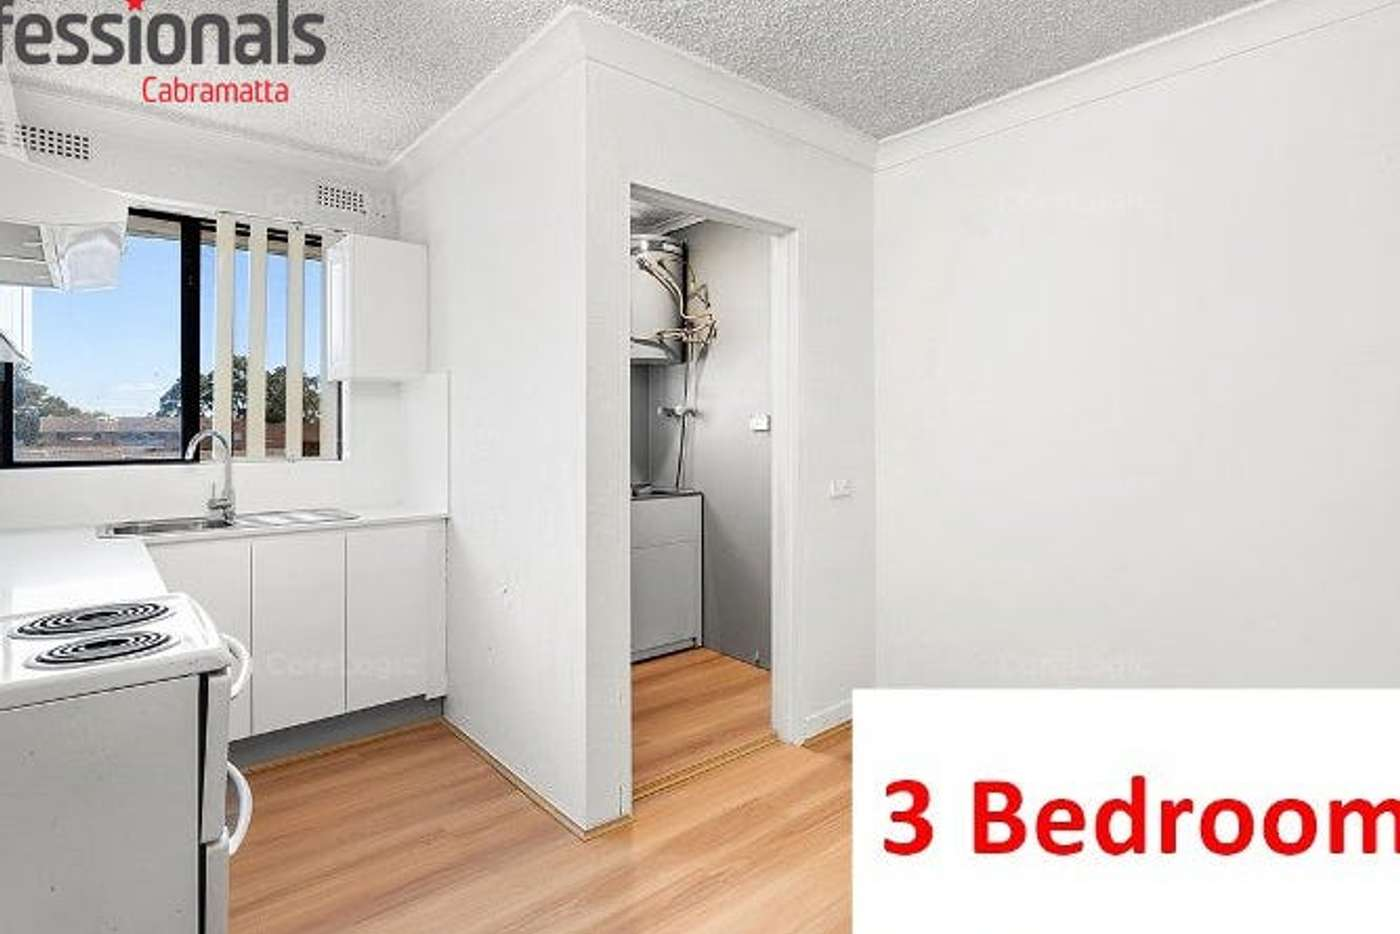 Main view of Homely unit listing, 12/70 Hughes Street, Cabramatta NSW 2166